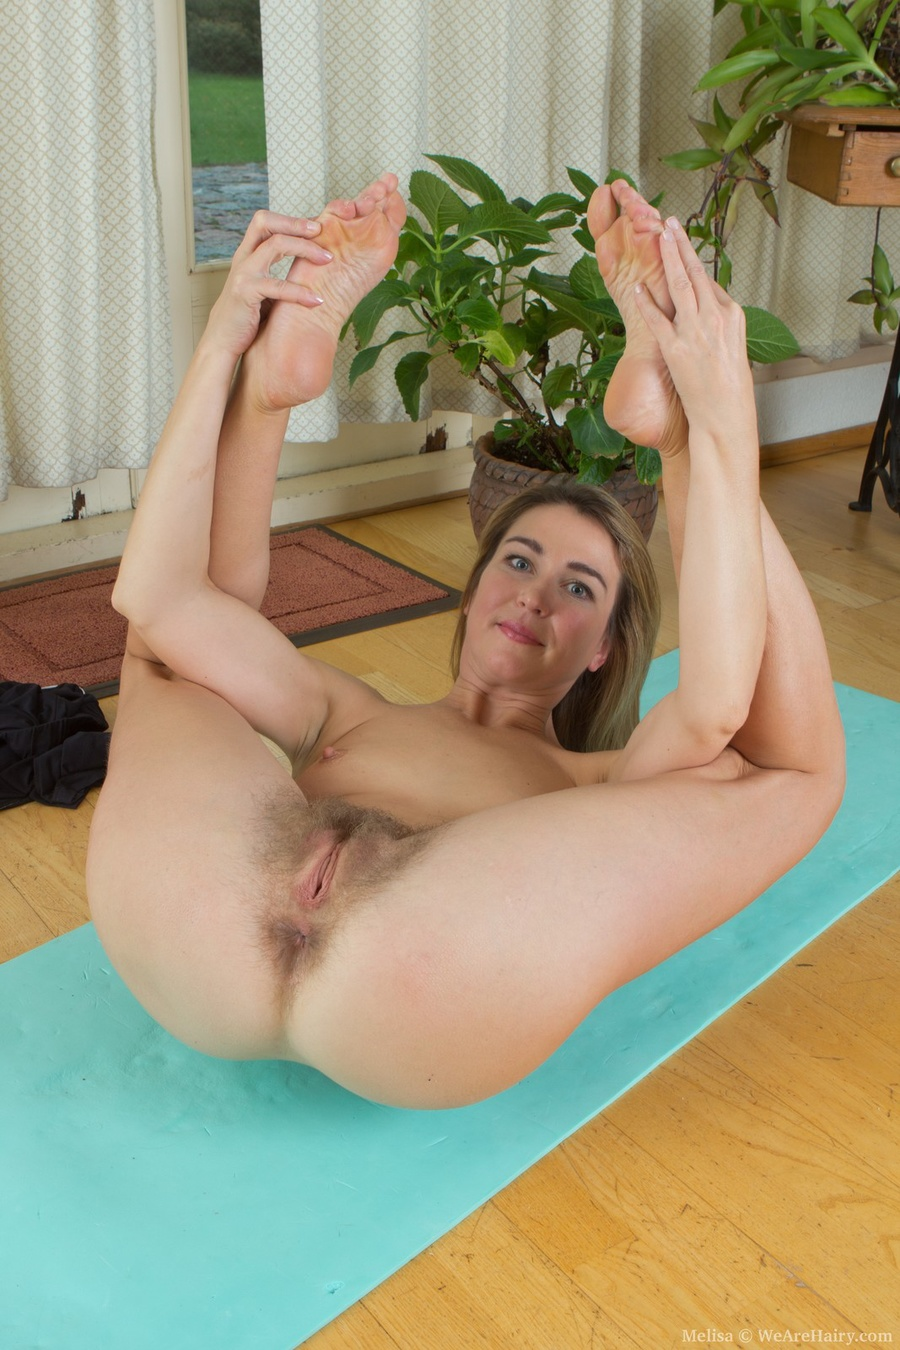 Melisa Exercises Naked And Shows Hairy Pussy